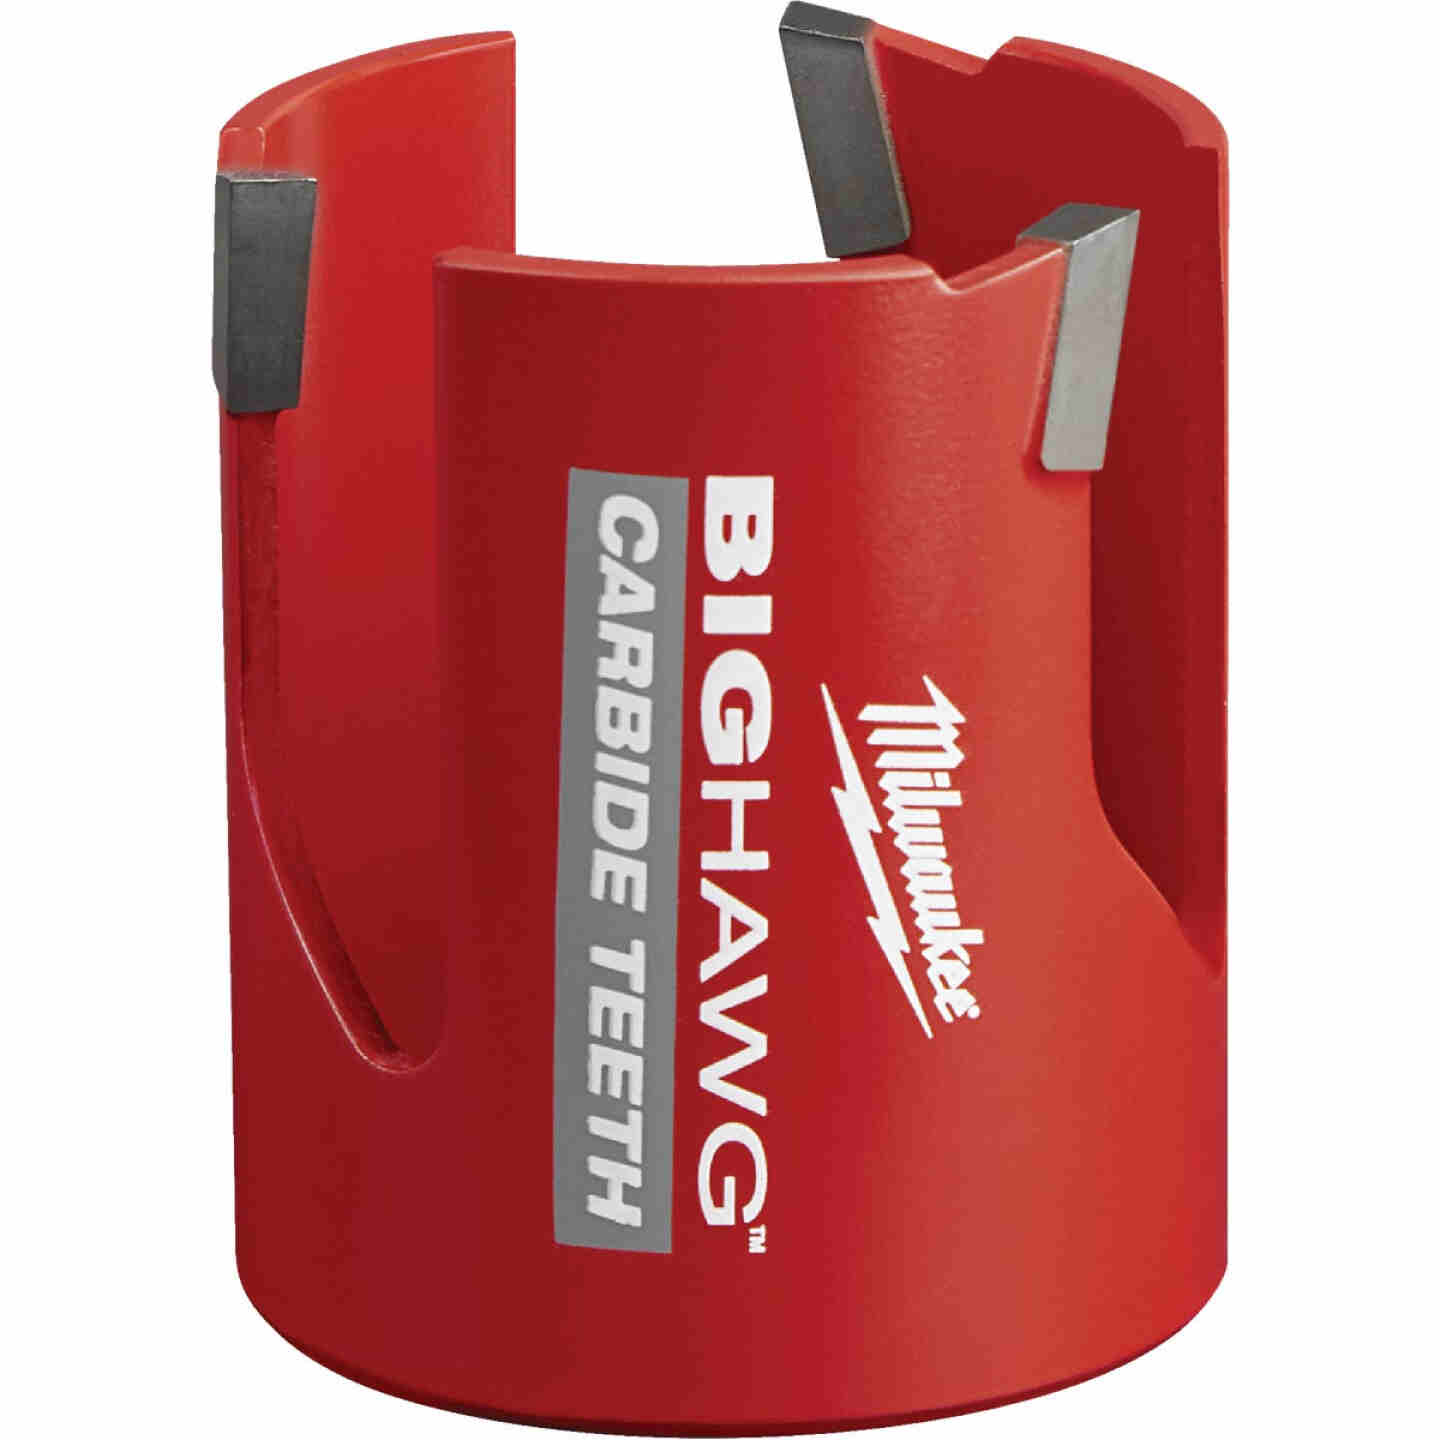 Milwaukee Big Hawg 2-1/4 In. Carbide-Tipped Hole Saw Image 1